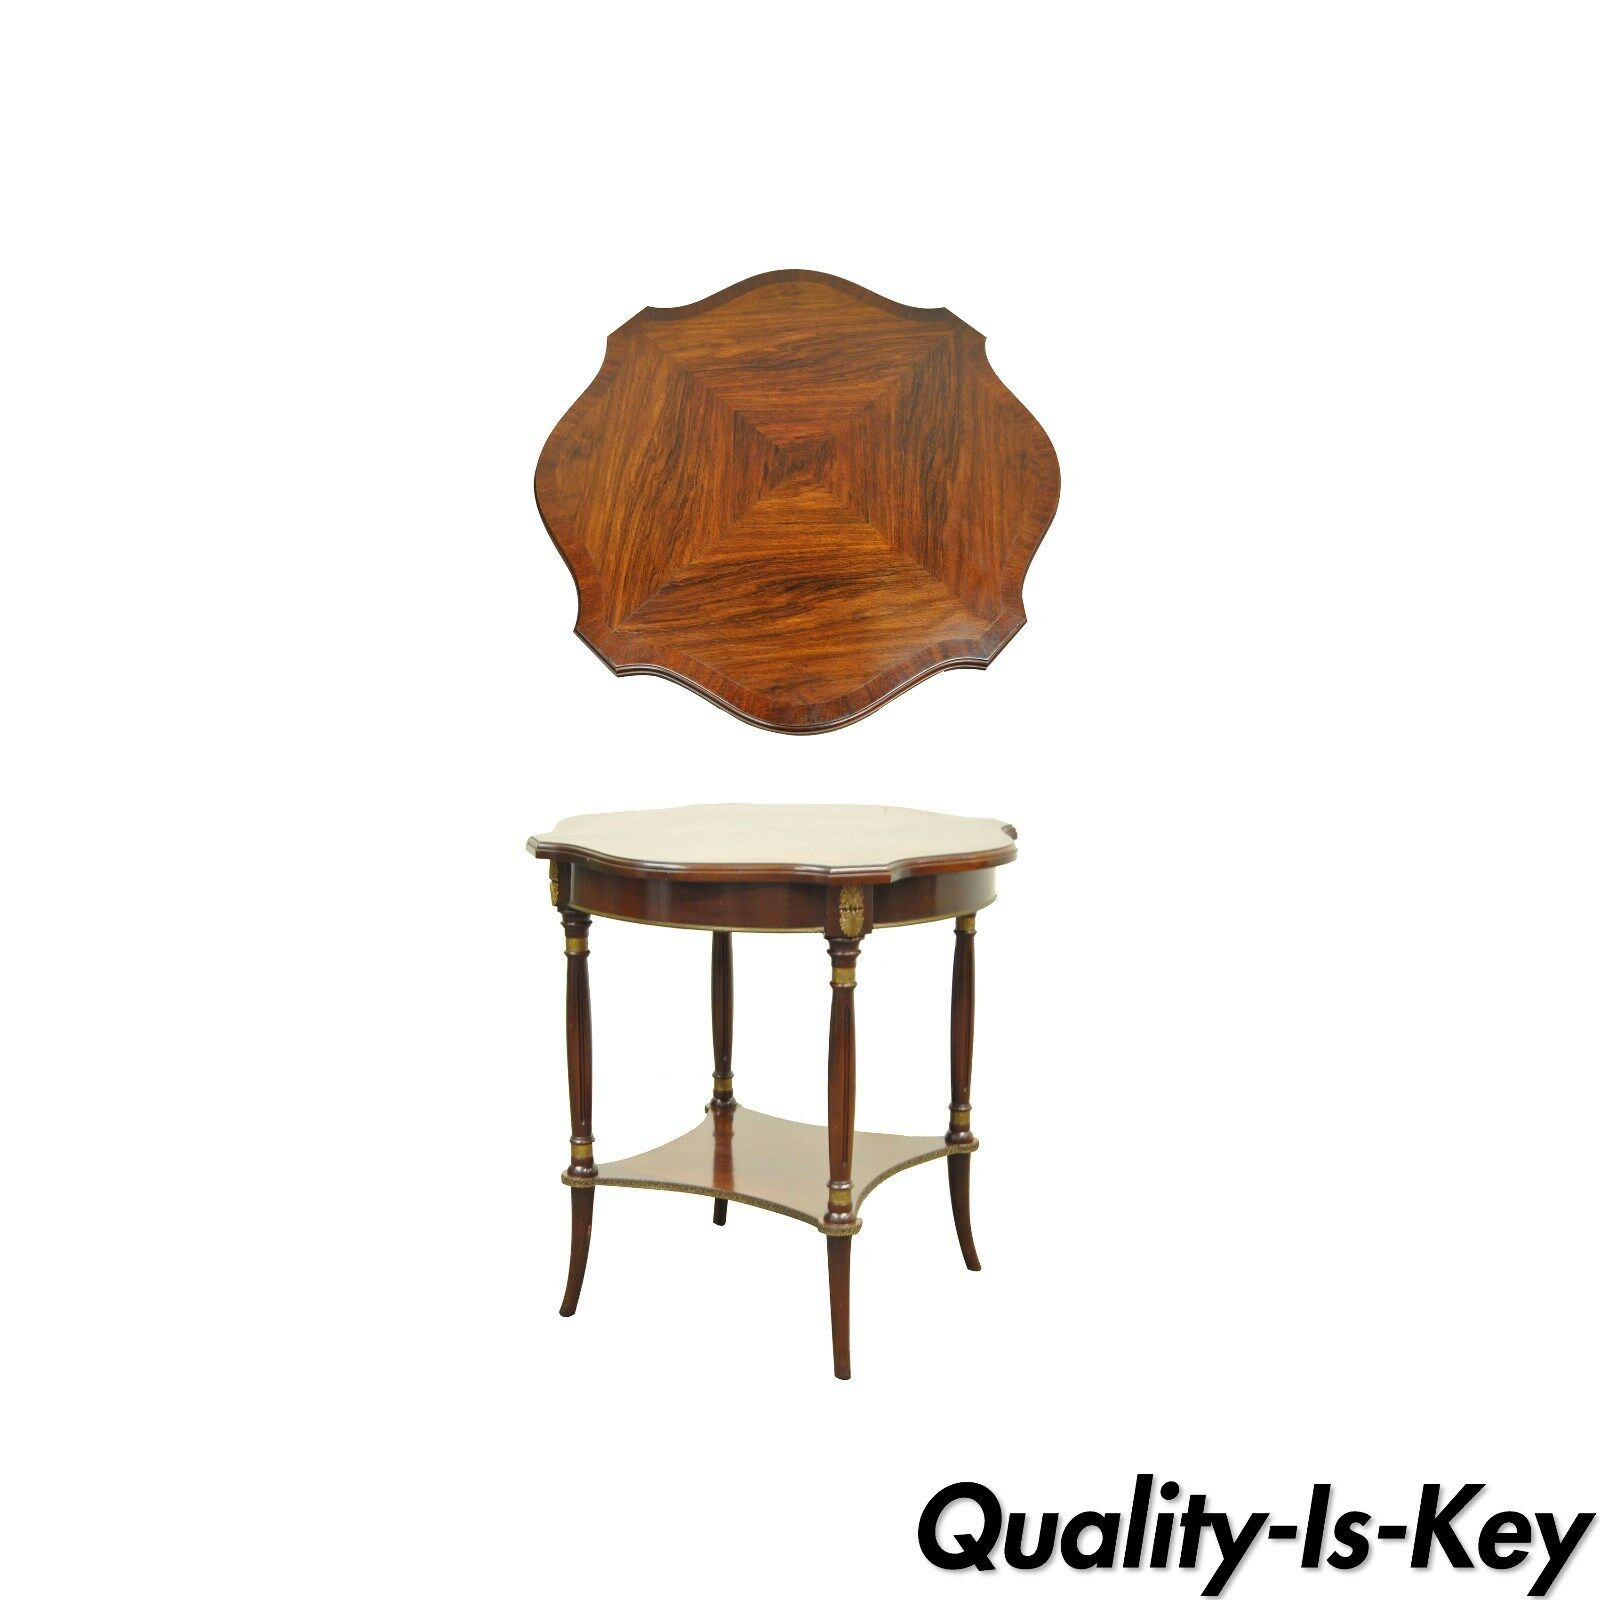 antique french empire regency style rosewood mahogany brass ormolu accent table sofa with matching end tables blue linens console ikea dining room furniture bulk tablecloths